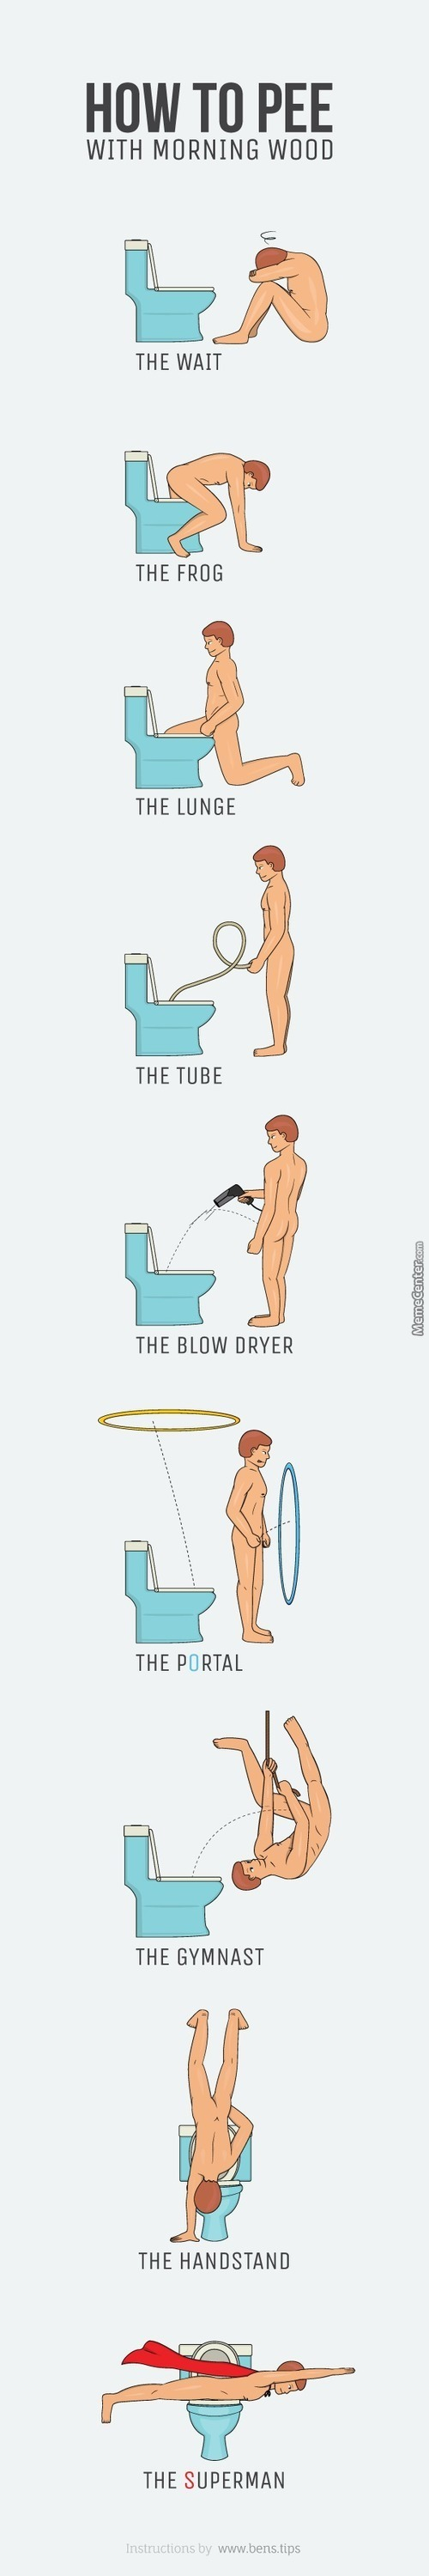 How To Pee.